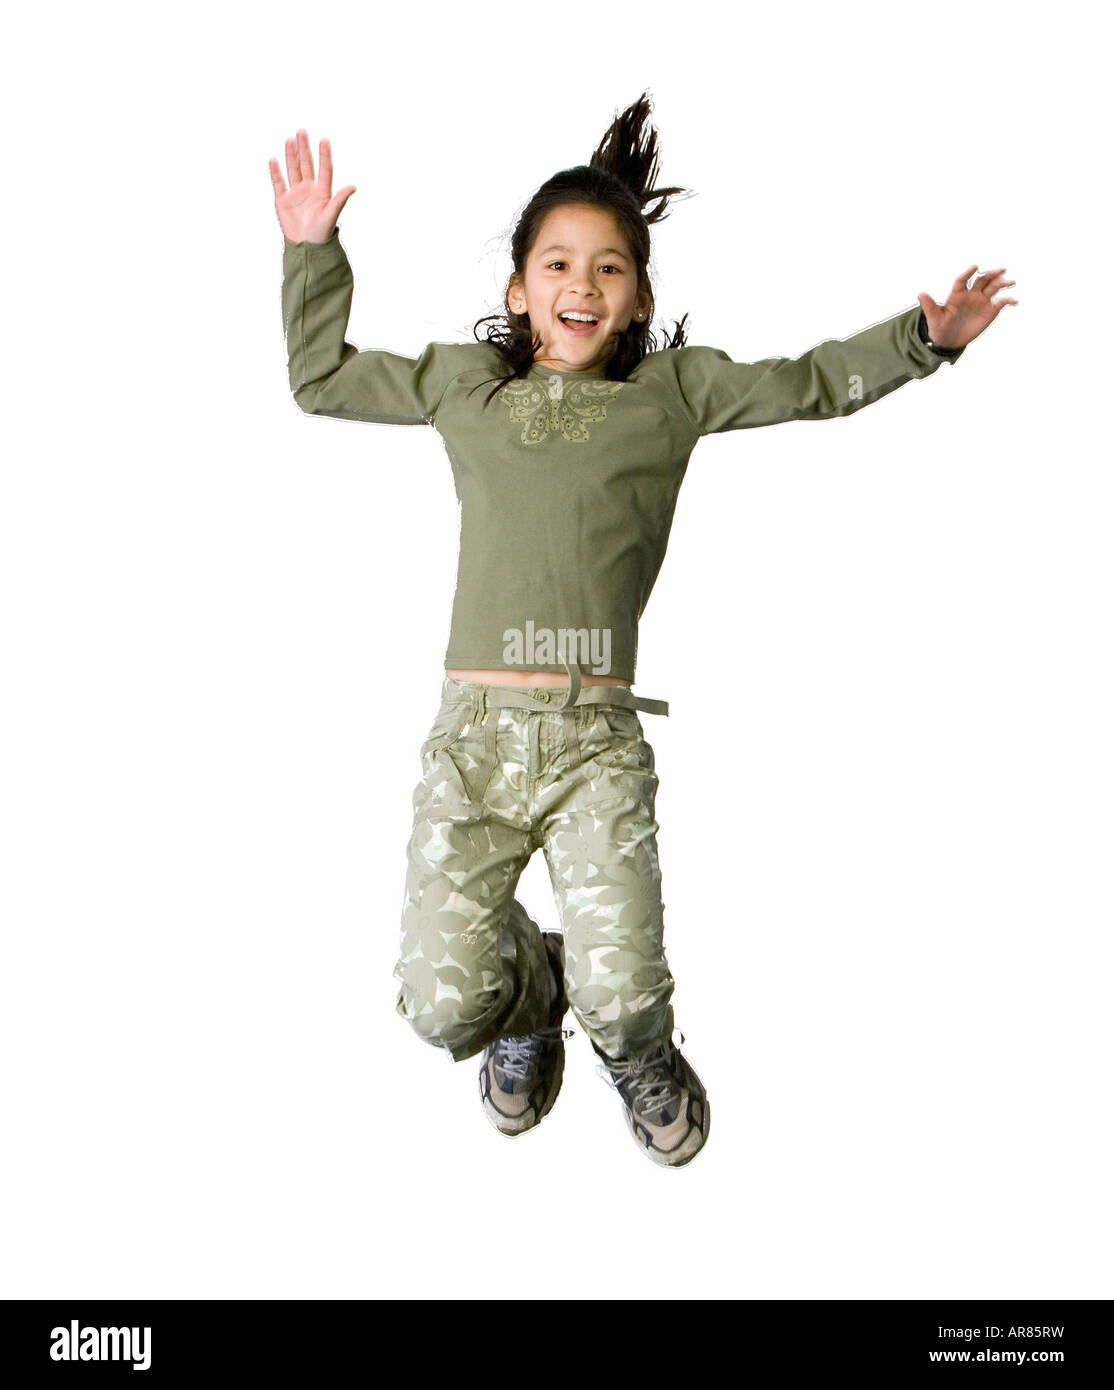 Preteen Latino girl jumping for joy - Stock Image